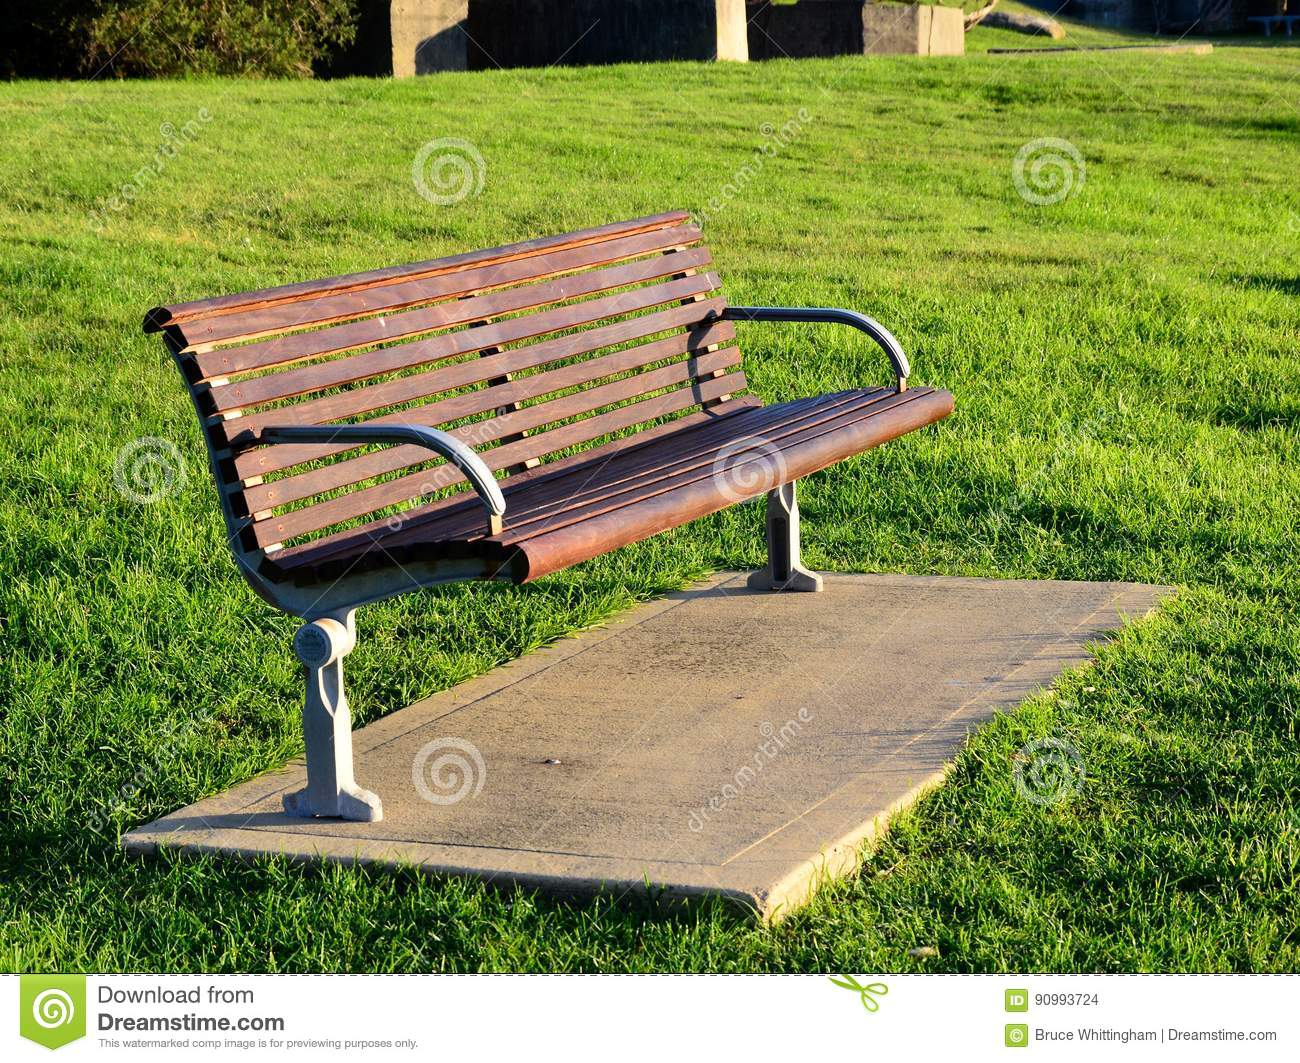 Incredible Modern Wooden Park Bench Stock Photo Image Of Early 90993724 Creativecarmelina Interior Chair Design Creativecarmelinacom